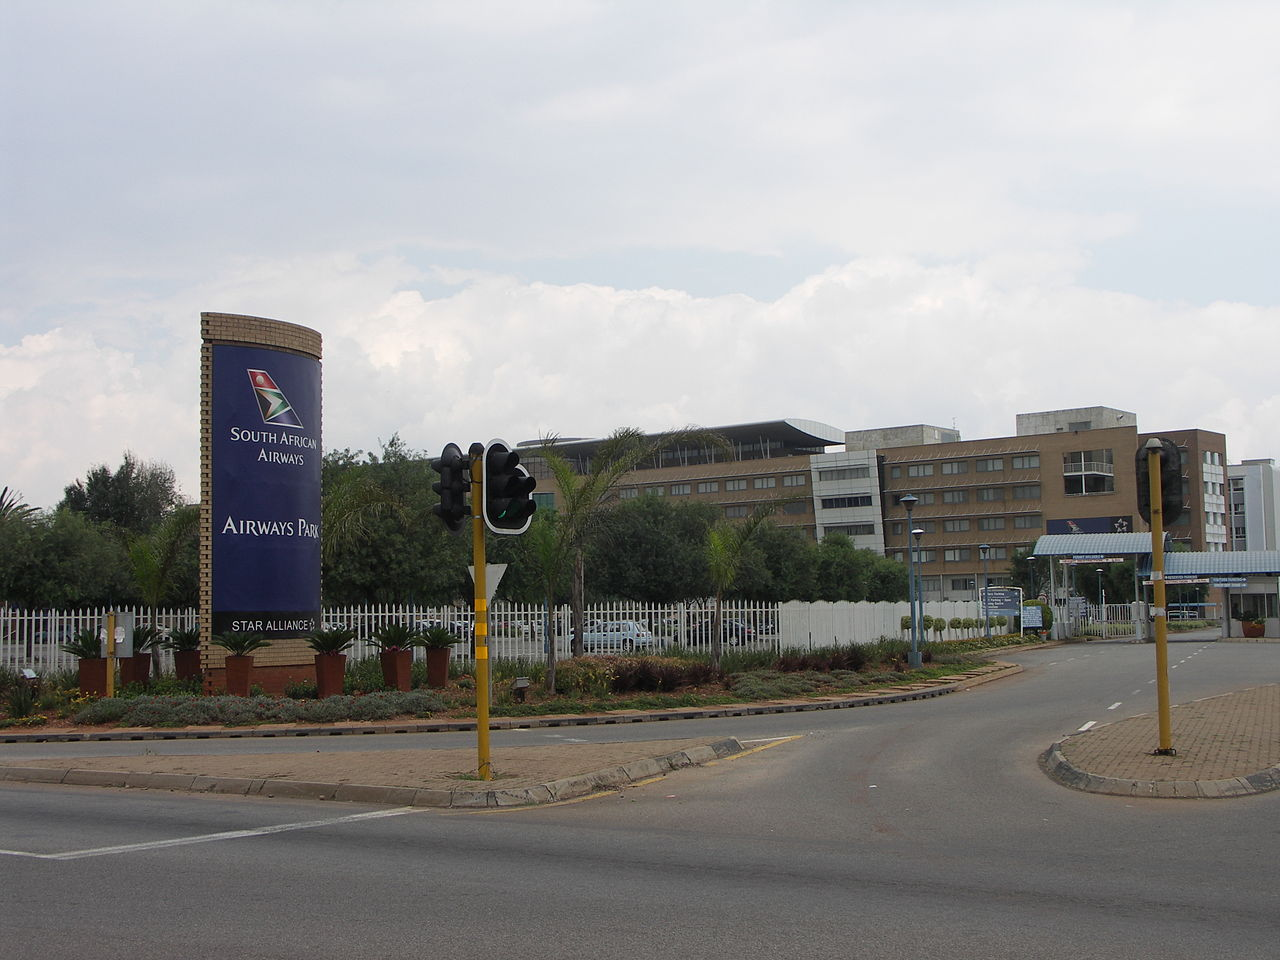 Airways Park - Sede central de South African Airways (Foto: NJR ZA - Wikimedia Commons)